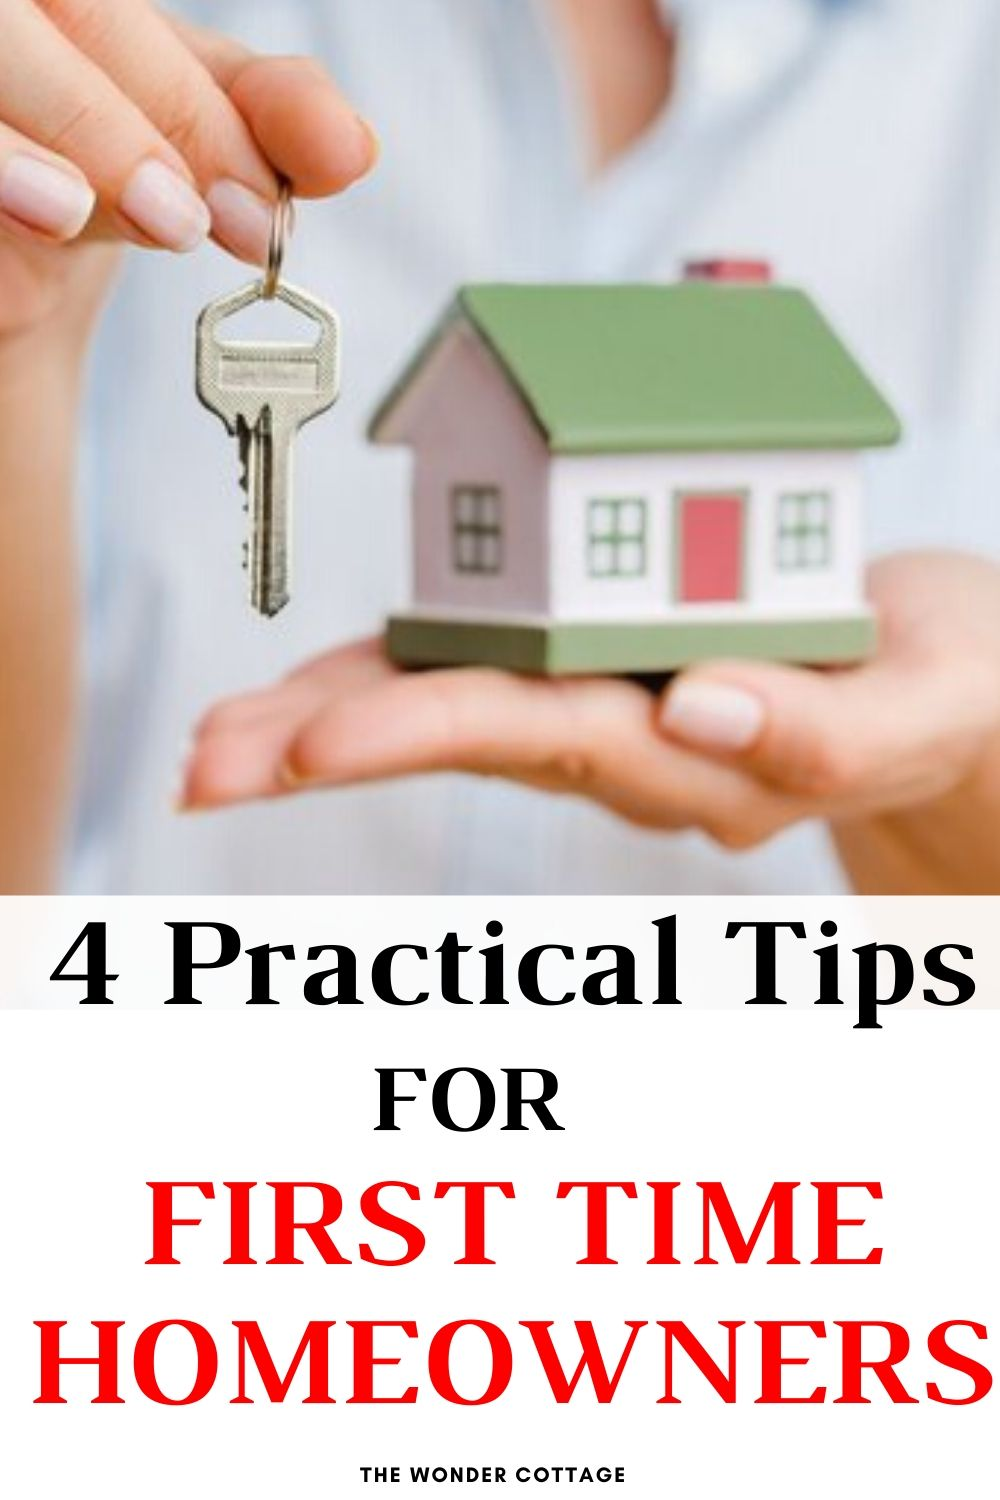 4 Practical Tips For First Time Homeowners